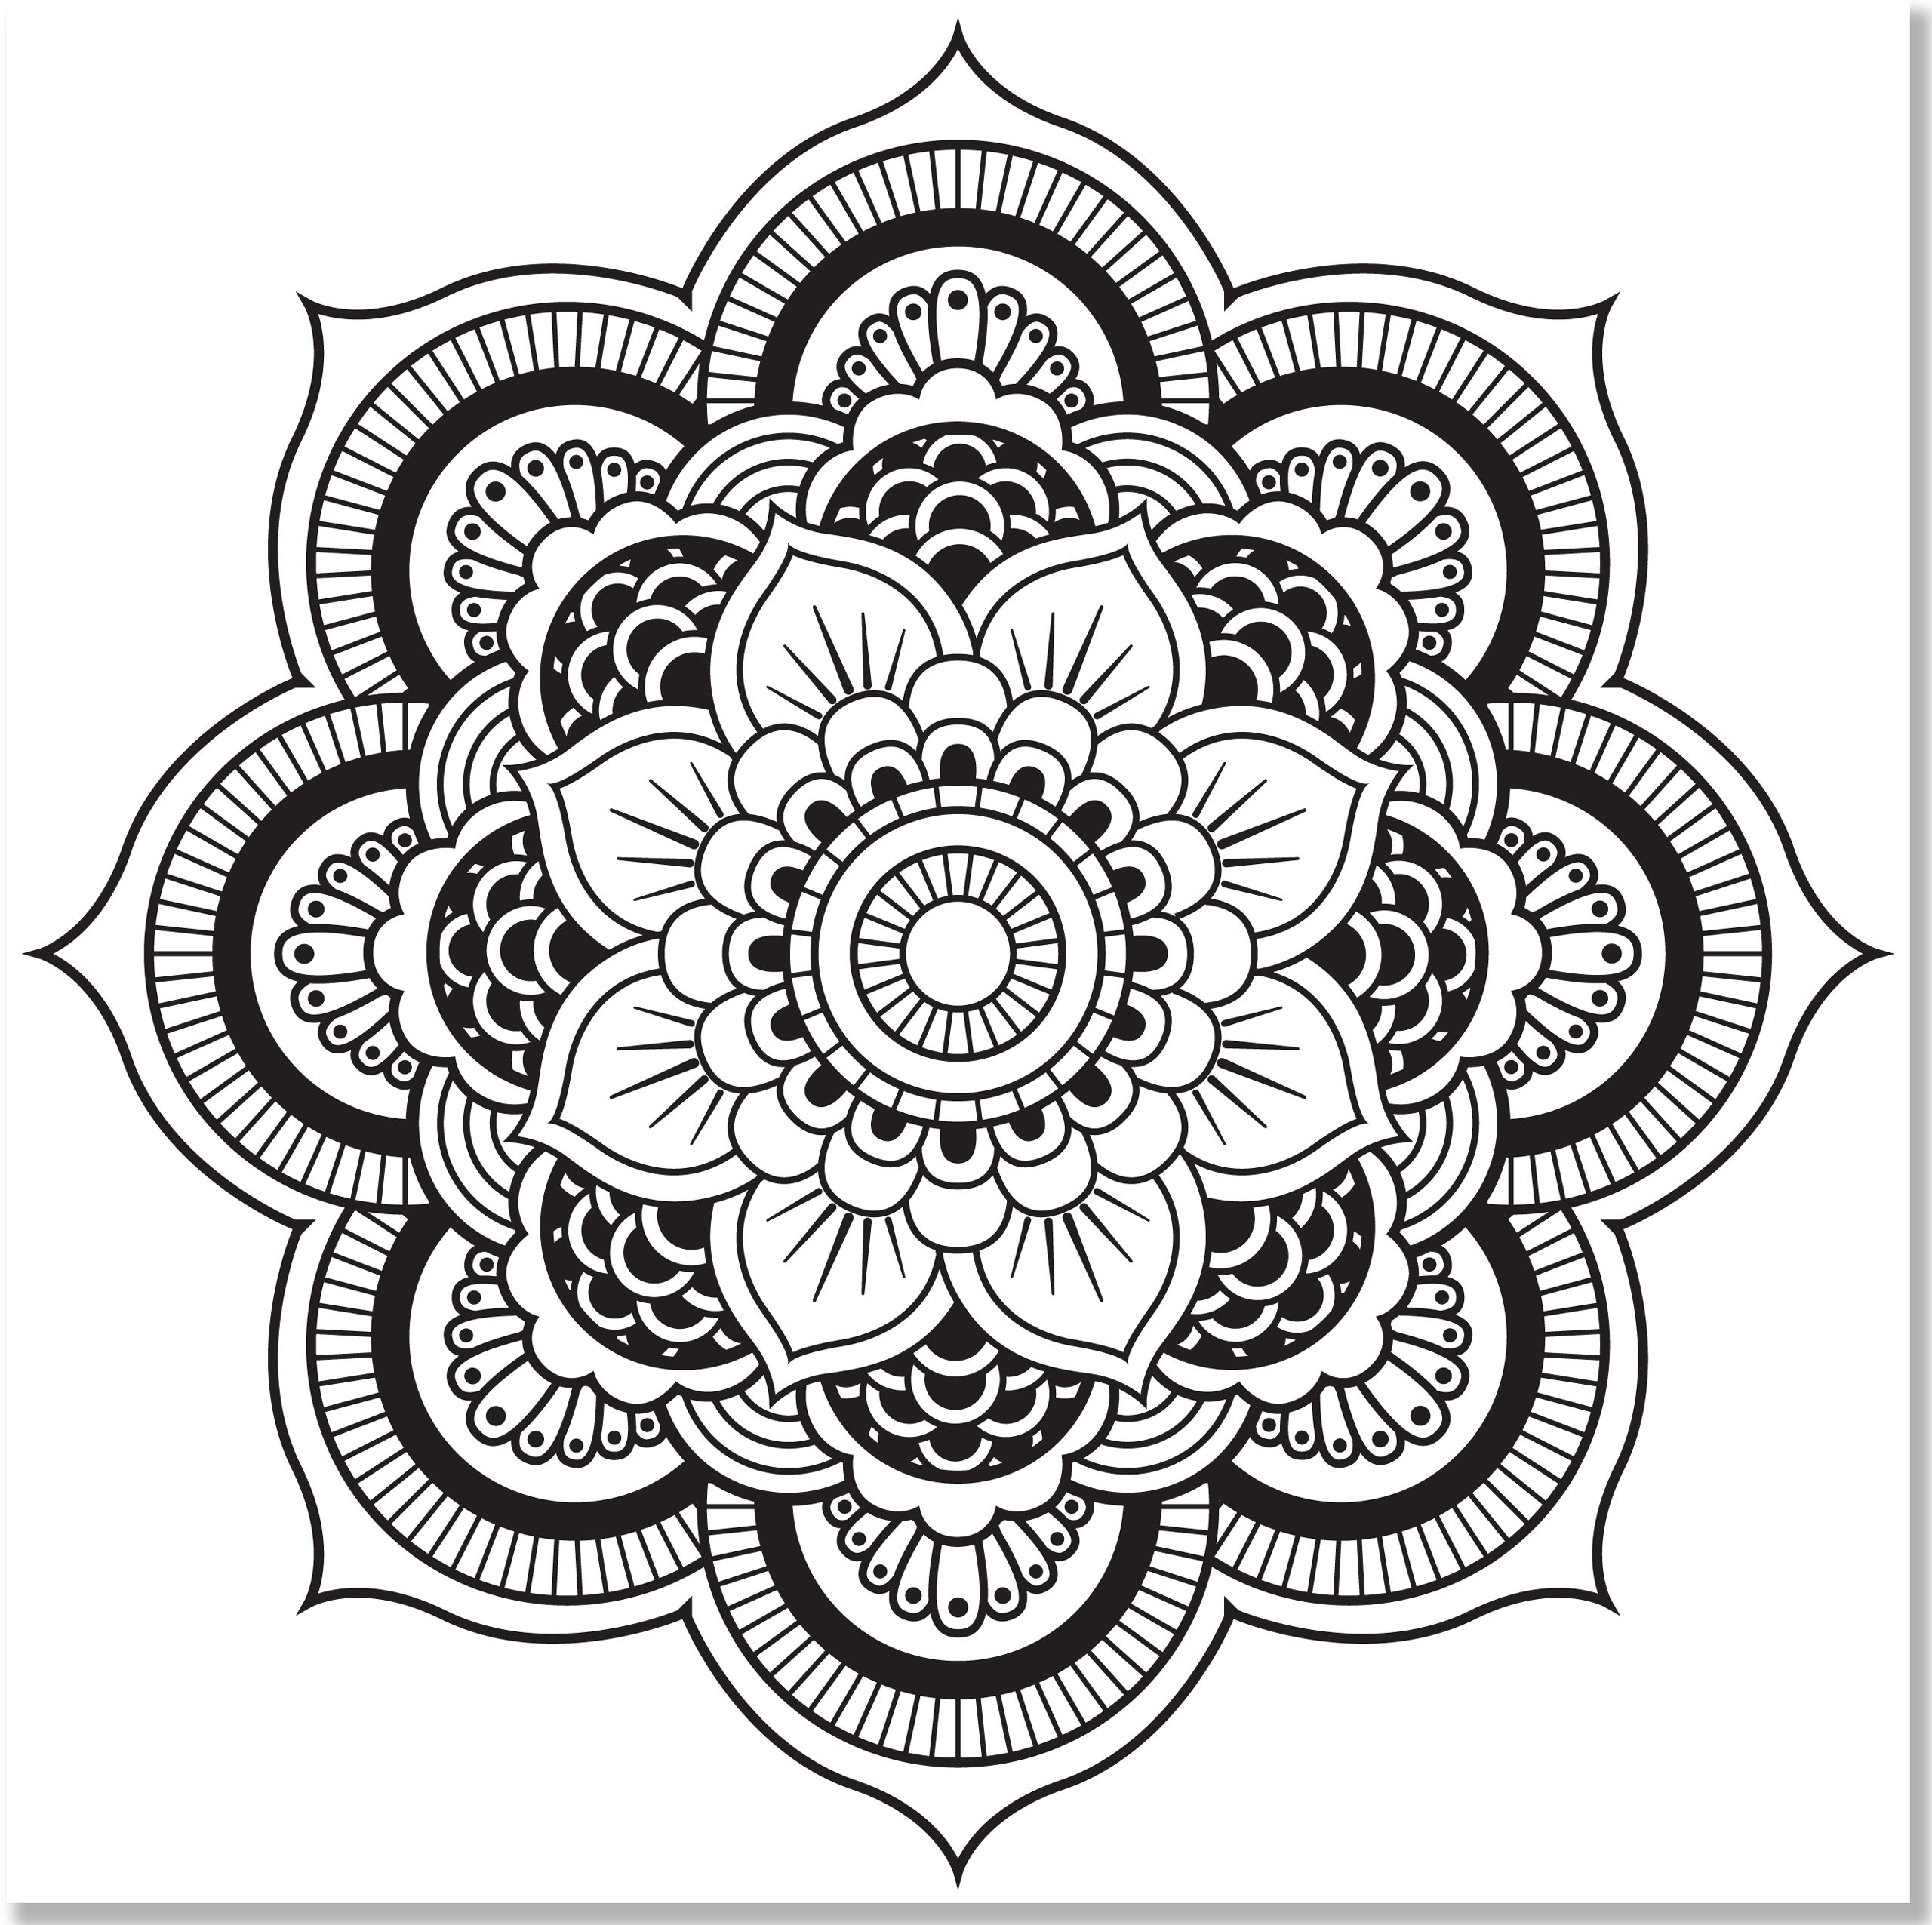 amazoncom mandala designs adult coloring book 31 stress relieving designs studio 9781441317445 peter pauper press books - Adults Coloring Books